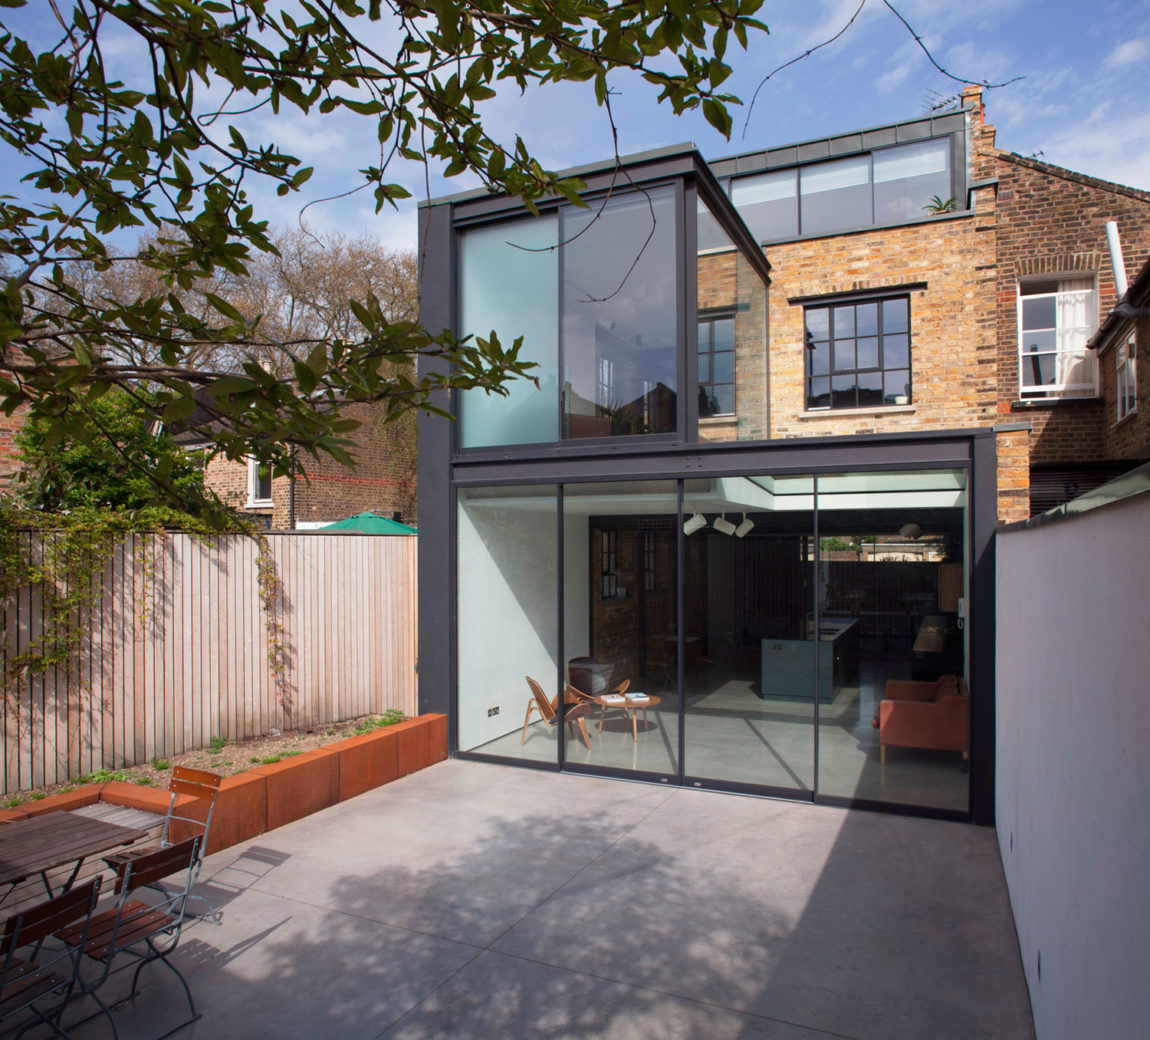 Sewdley St by Giles Pike Architects (4)